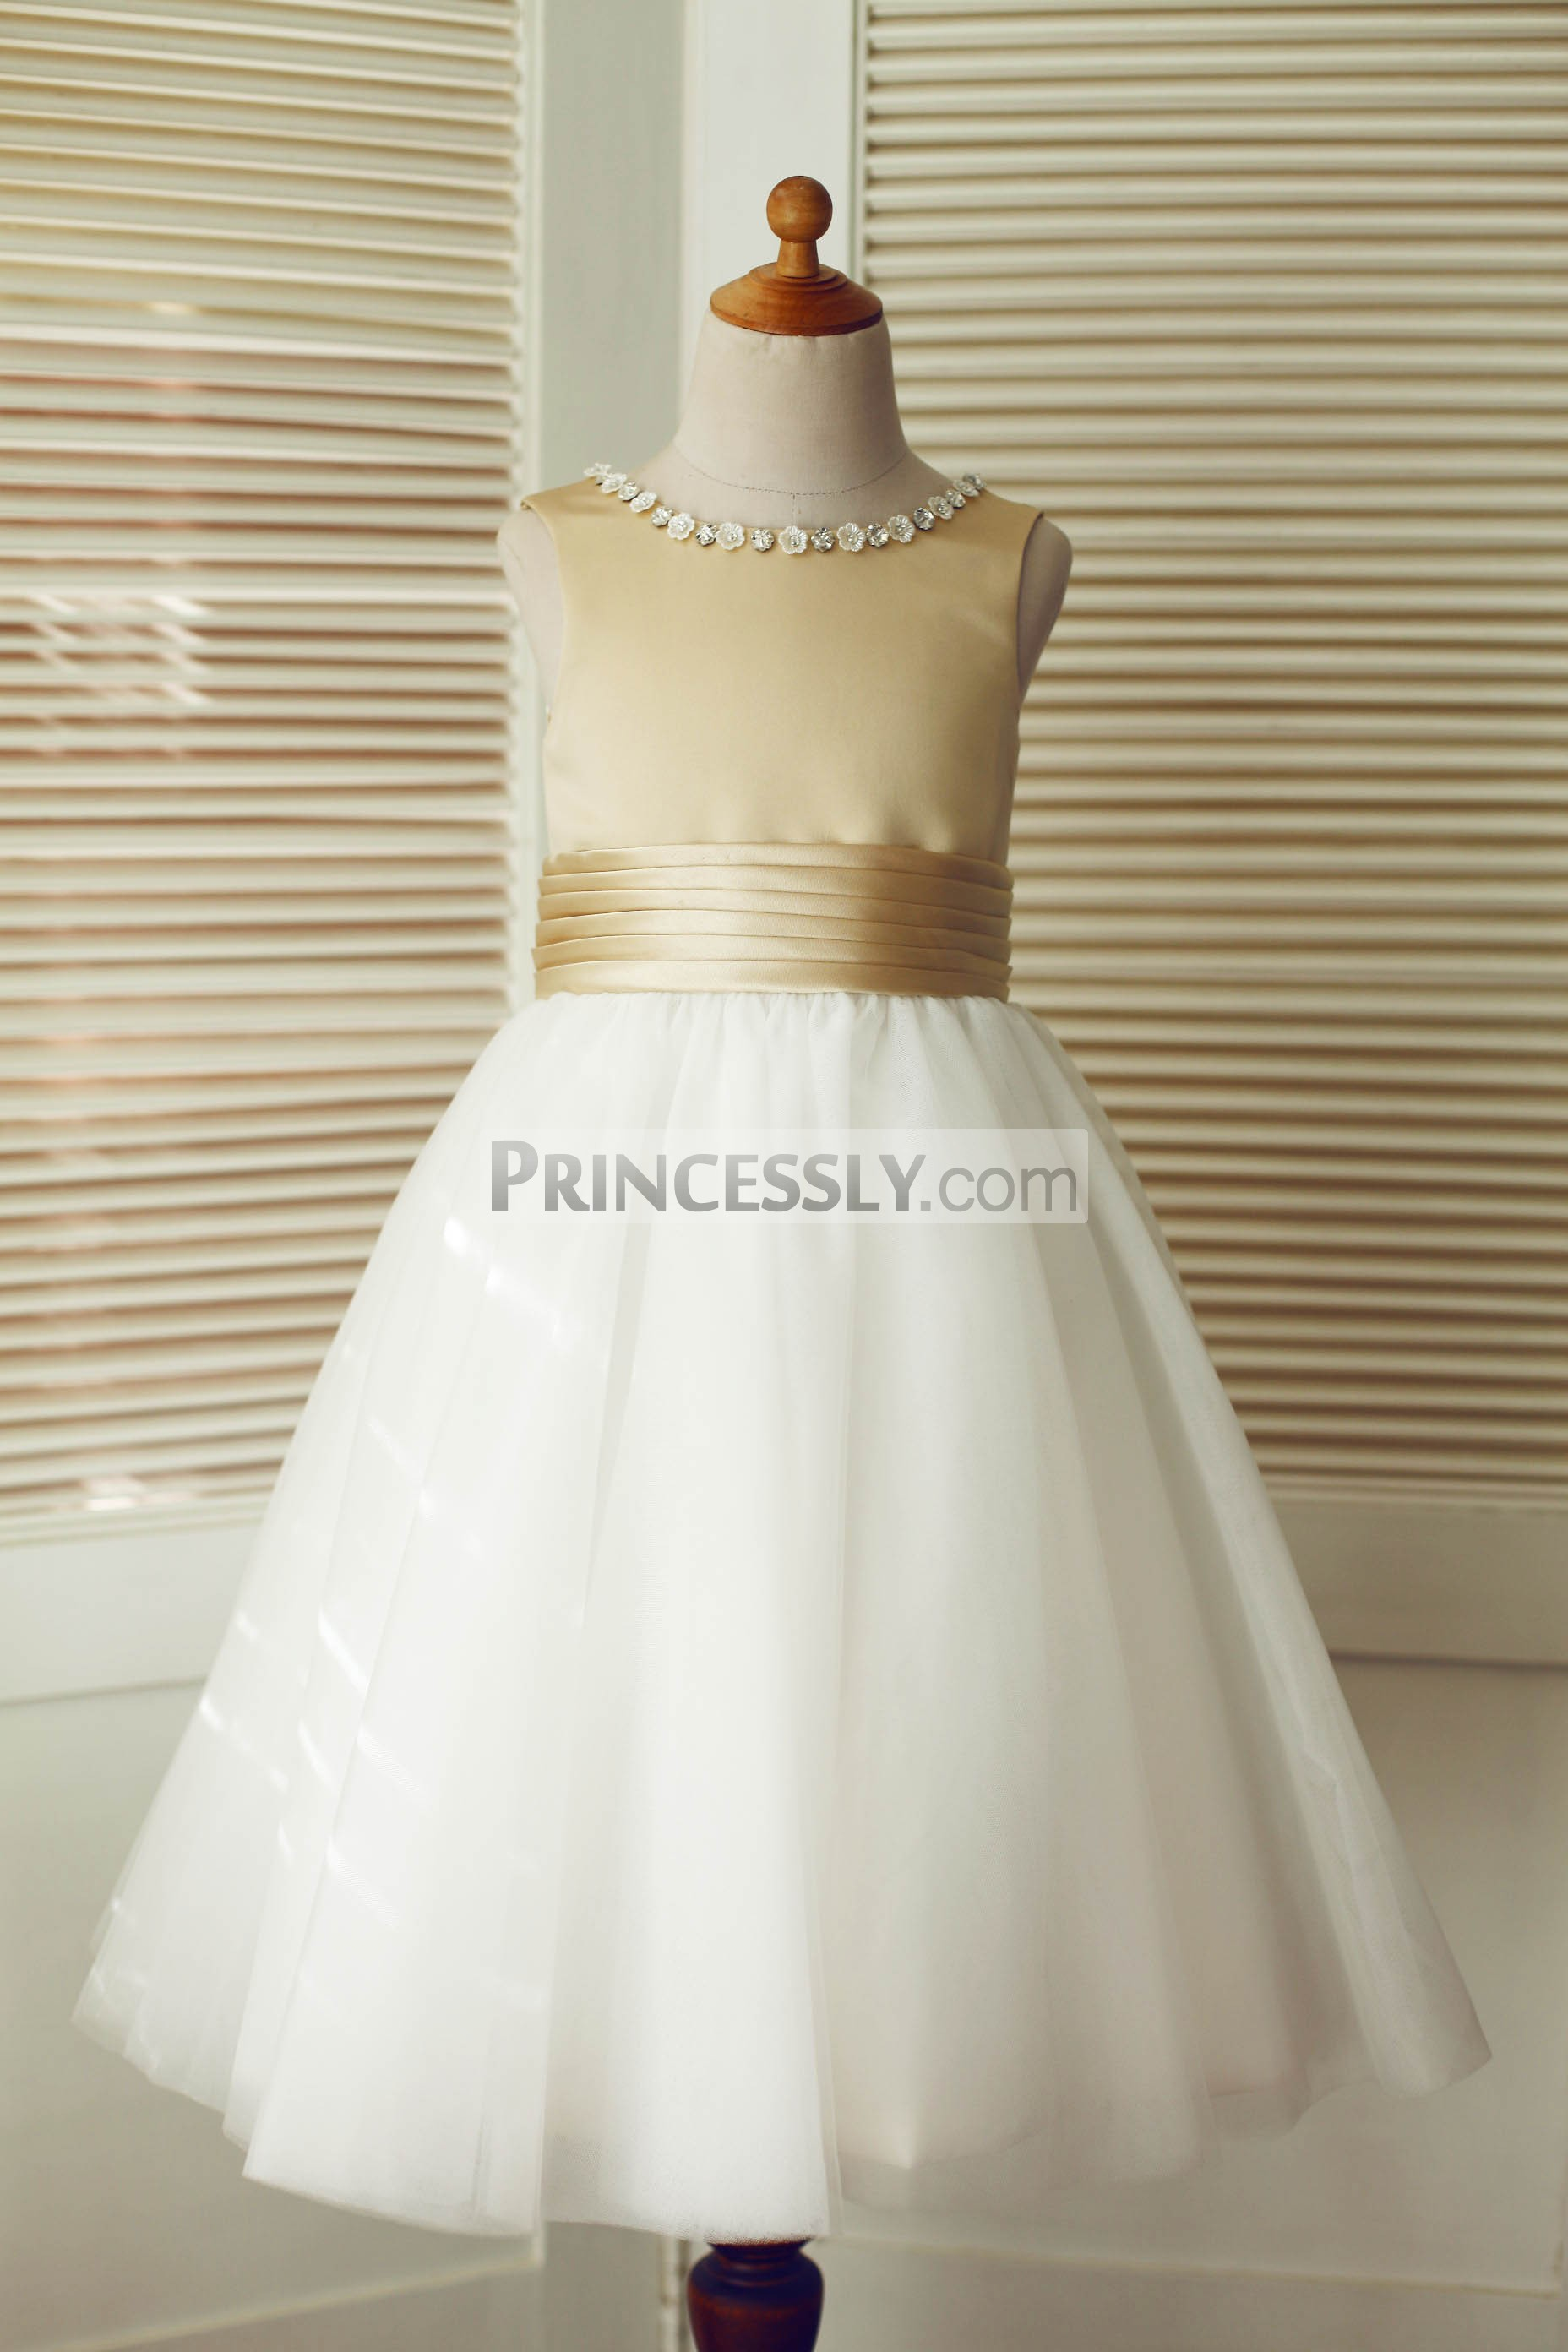 d59c98cce61 Champagne Satin Ivory Tulle Flower Girl Dress with Beaded Neck